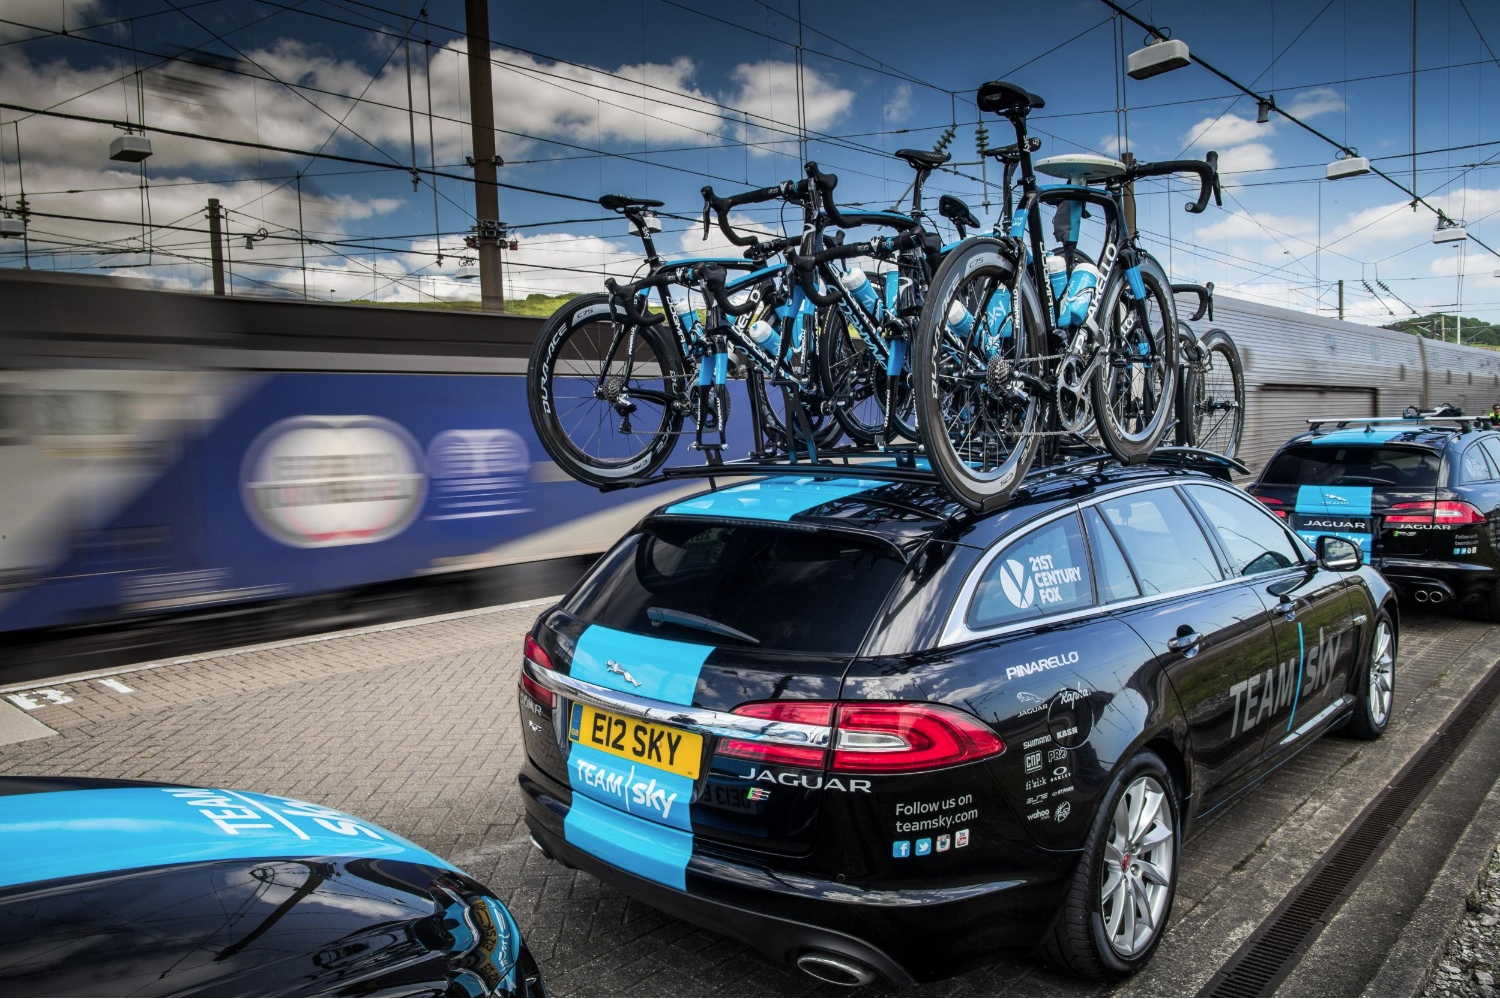 tour de france champ chris froome becomes the first to cycle in eurotunnel autoevolution. Black Bedroom Furniture Sets. Home Design Ideas